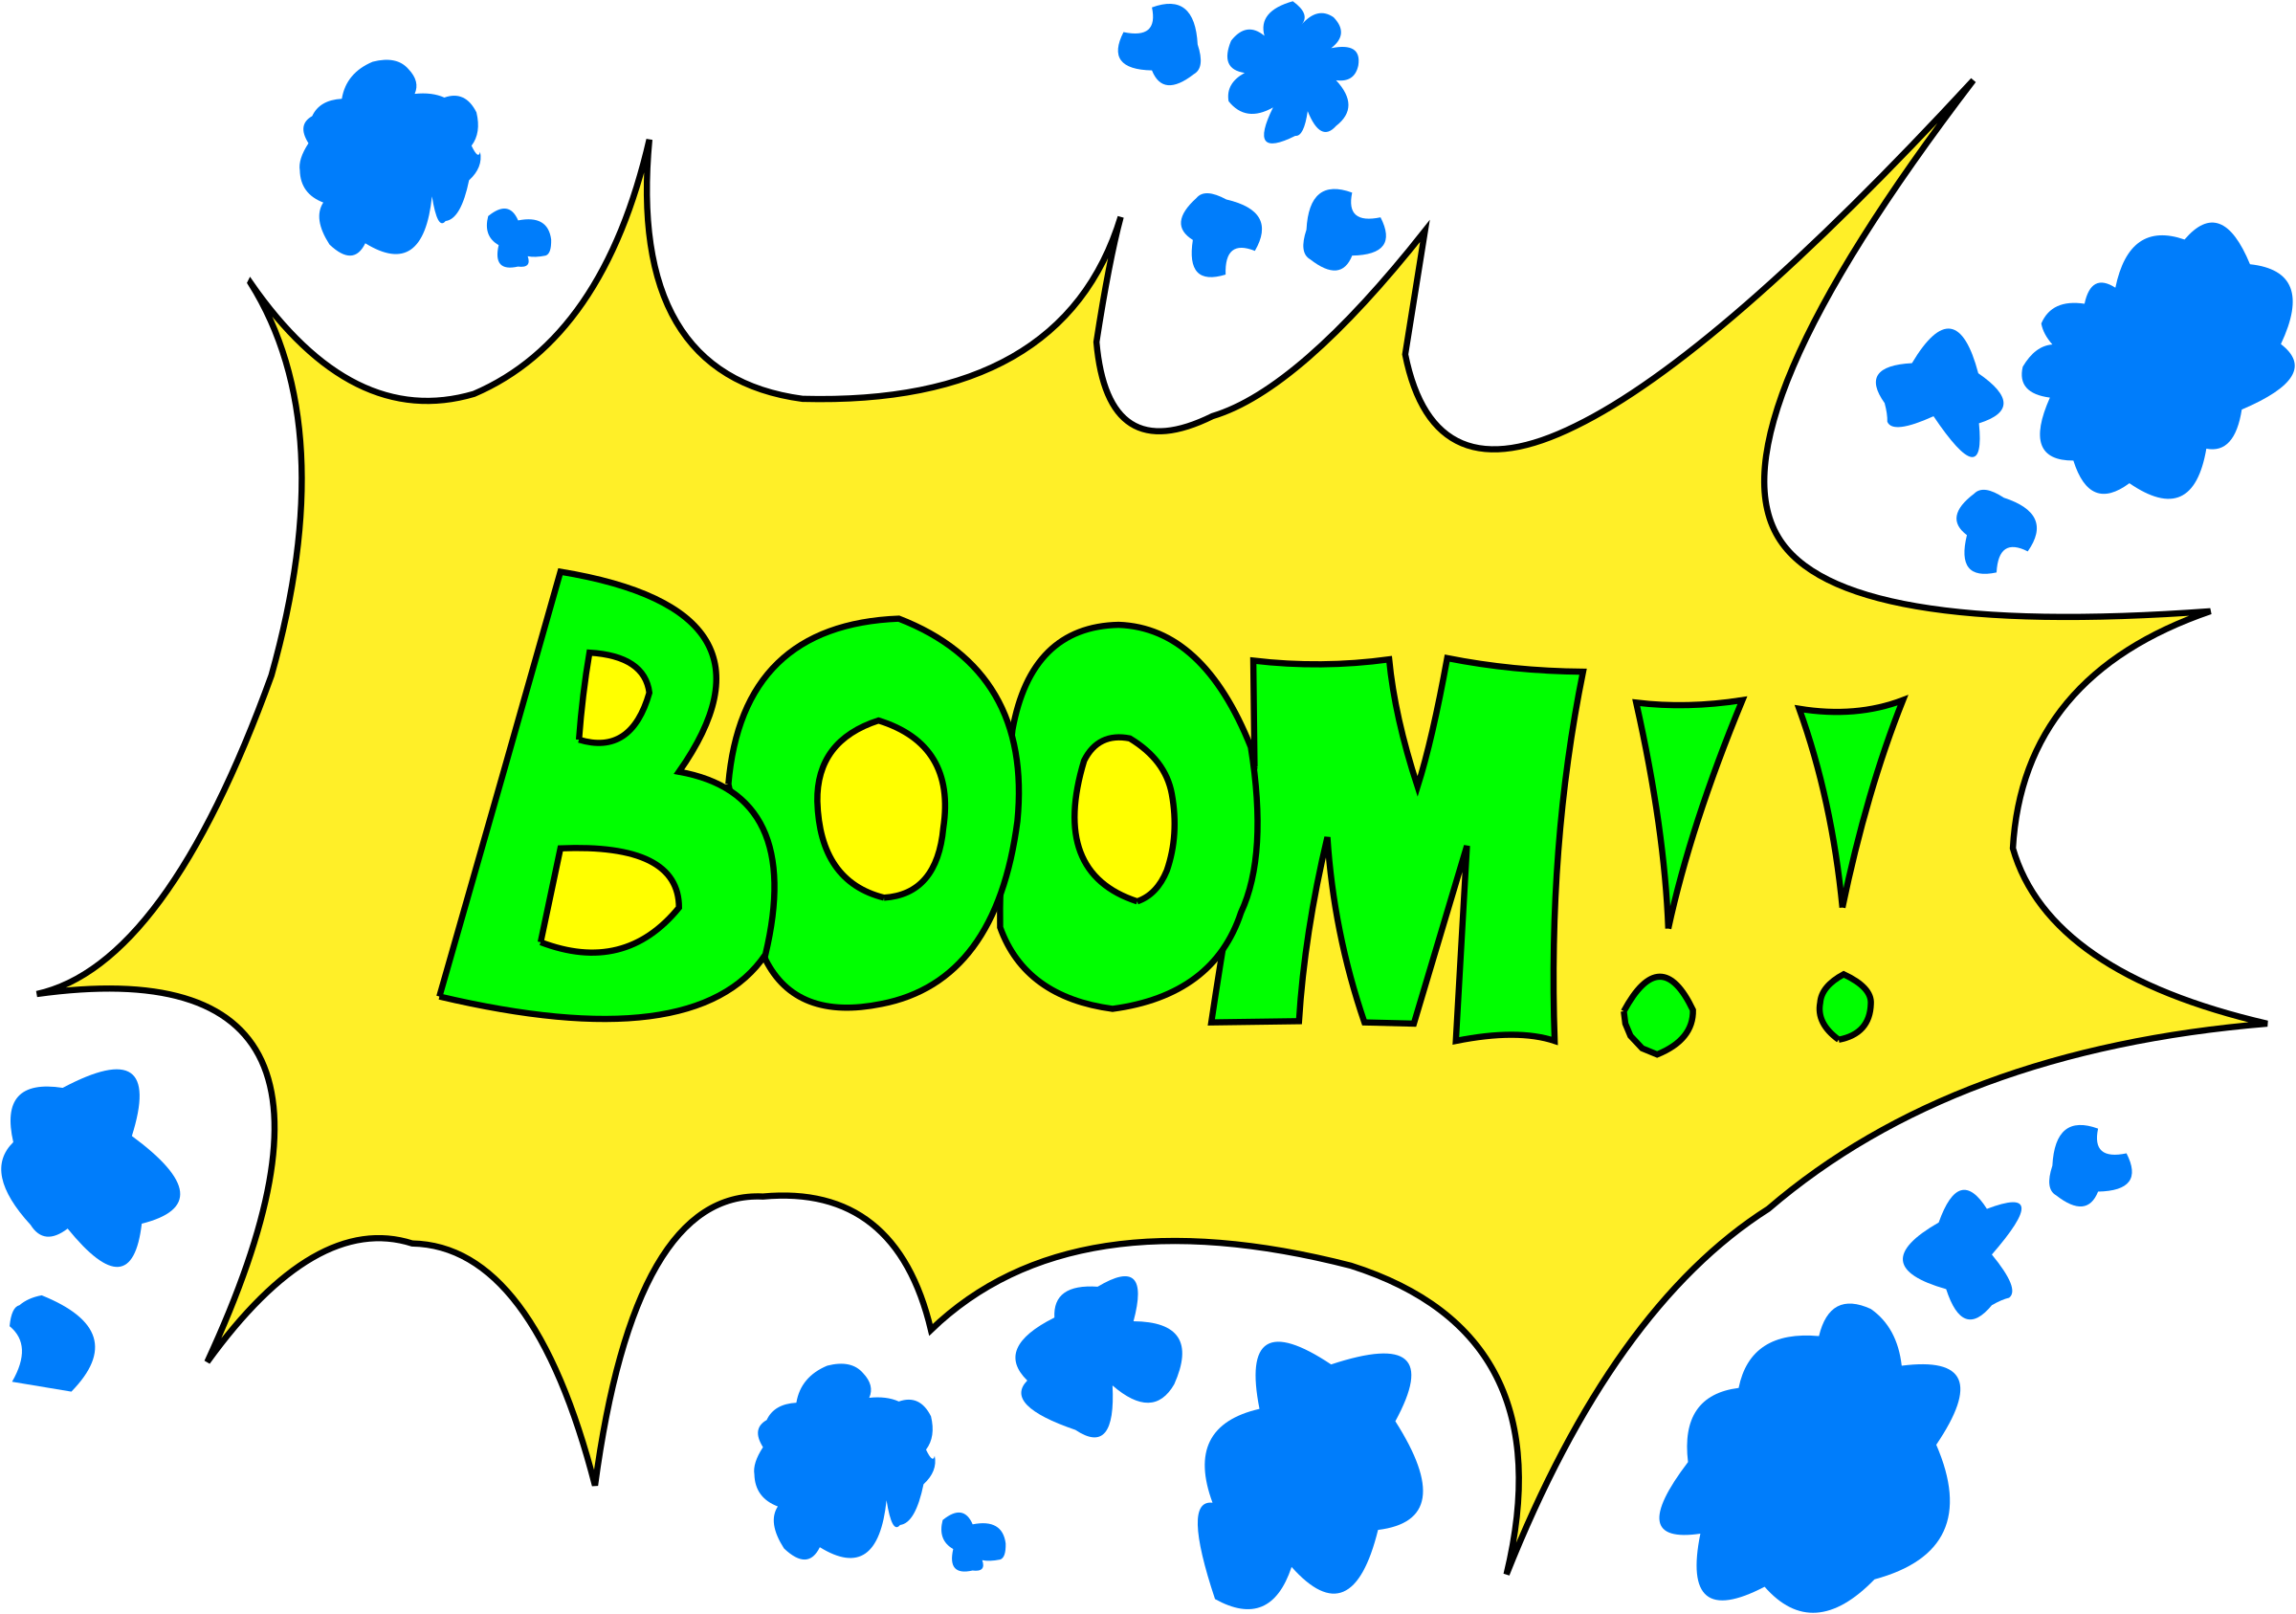 Boom transparent vector. Collection of free boomed